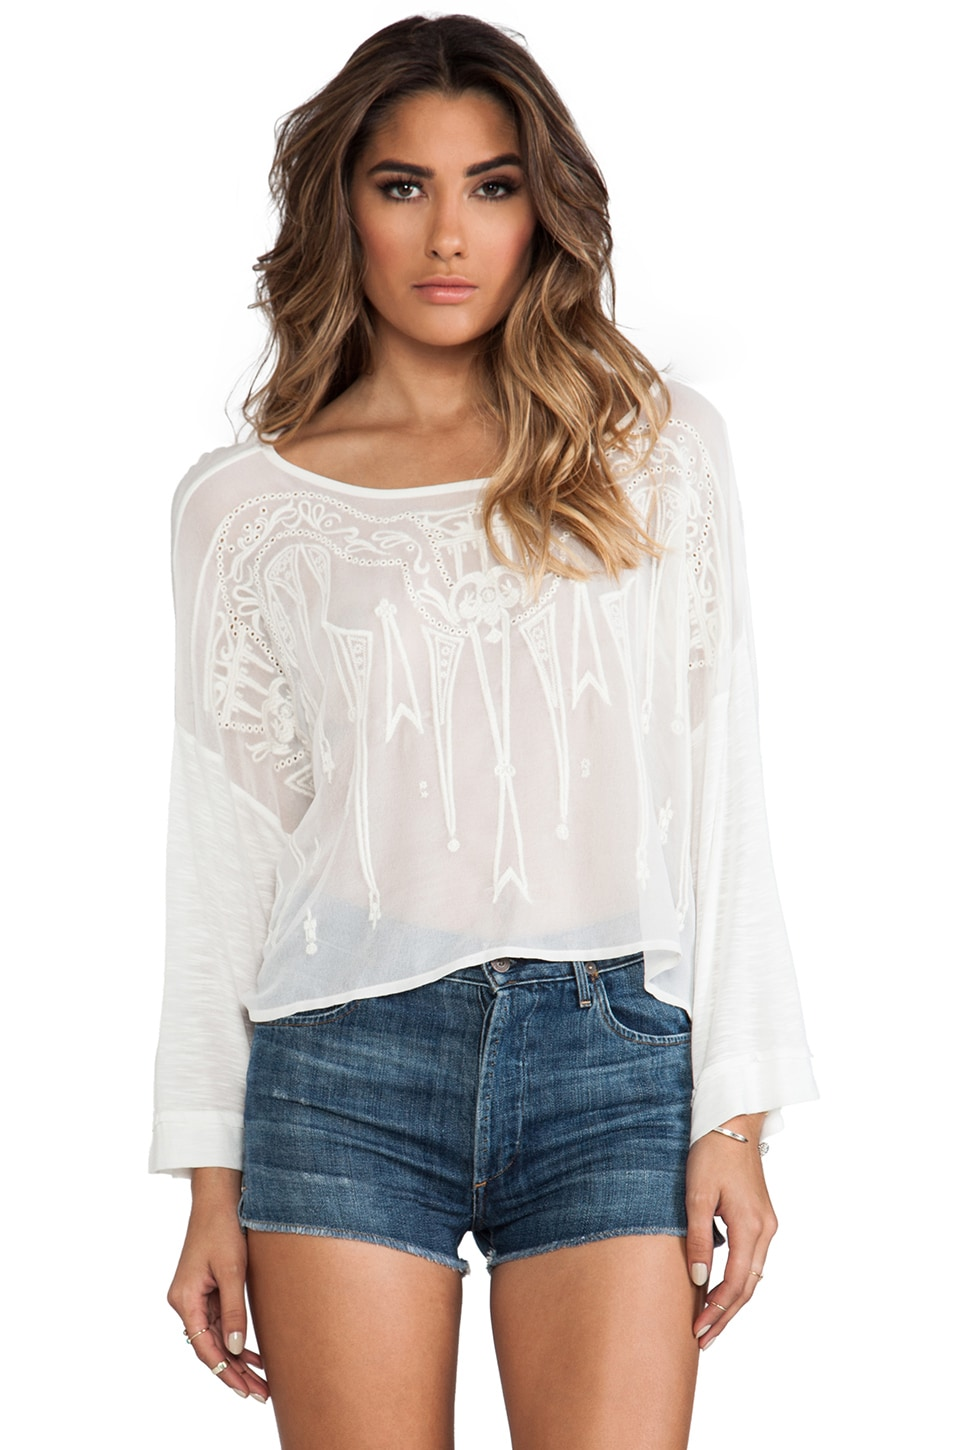 Free People Pandora's Embroidered Top in White